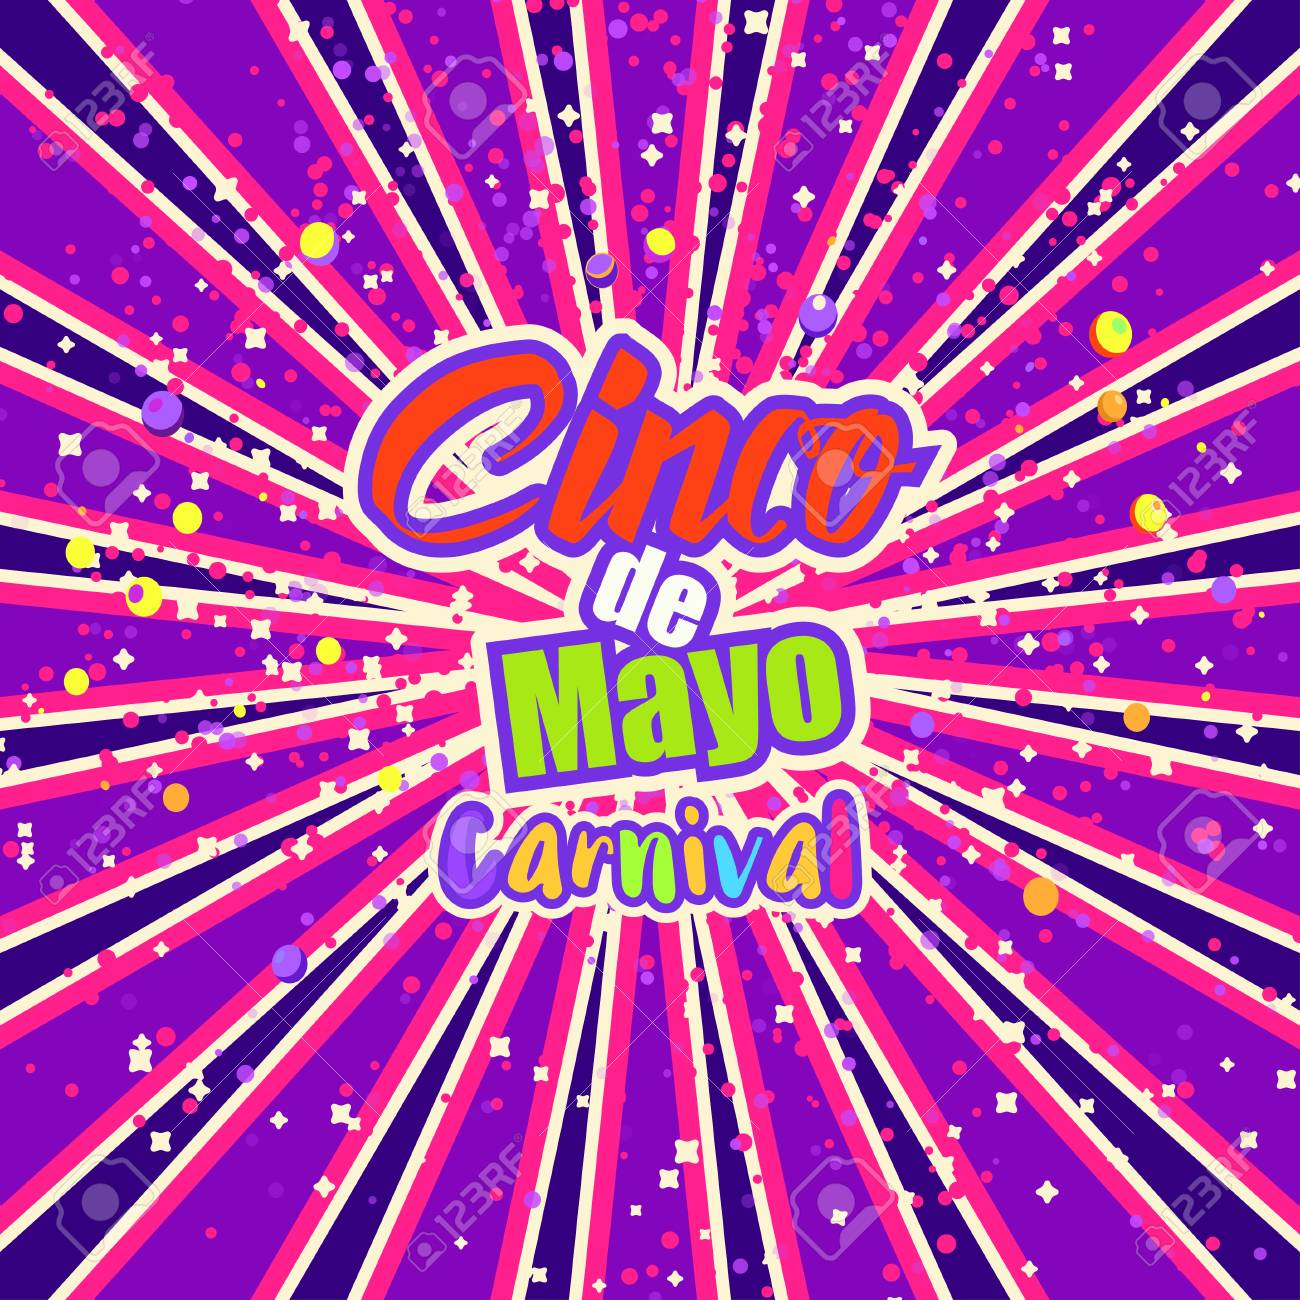 cinco de mayo celebration in mexico design element poster greeting card or brochure - Mexico Brochure Template